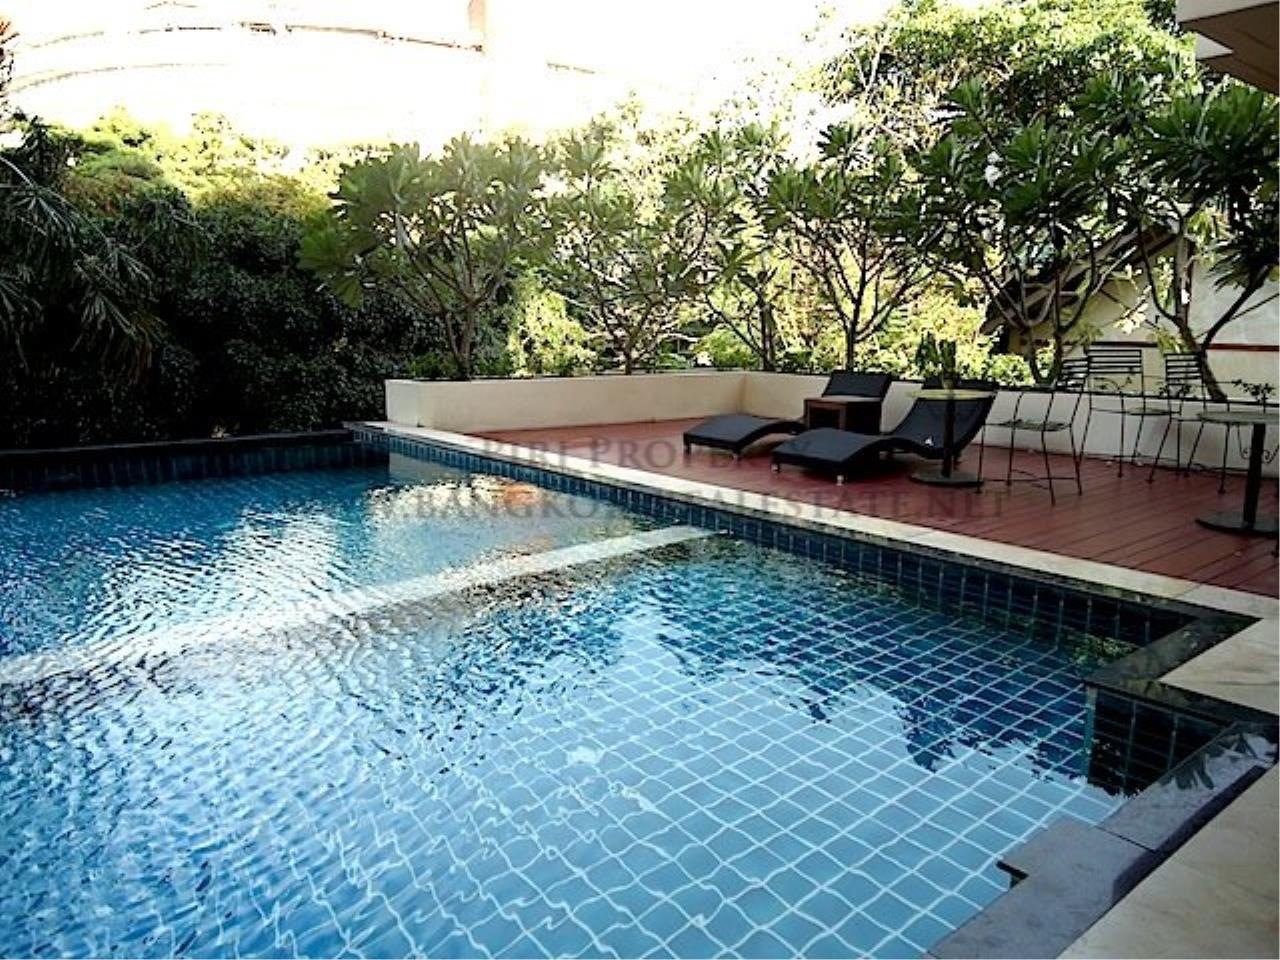 Piri Property Agency's The Amethyst 39 - 1 Bedroom Condo for Rent near Phrom Phong Condo 10